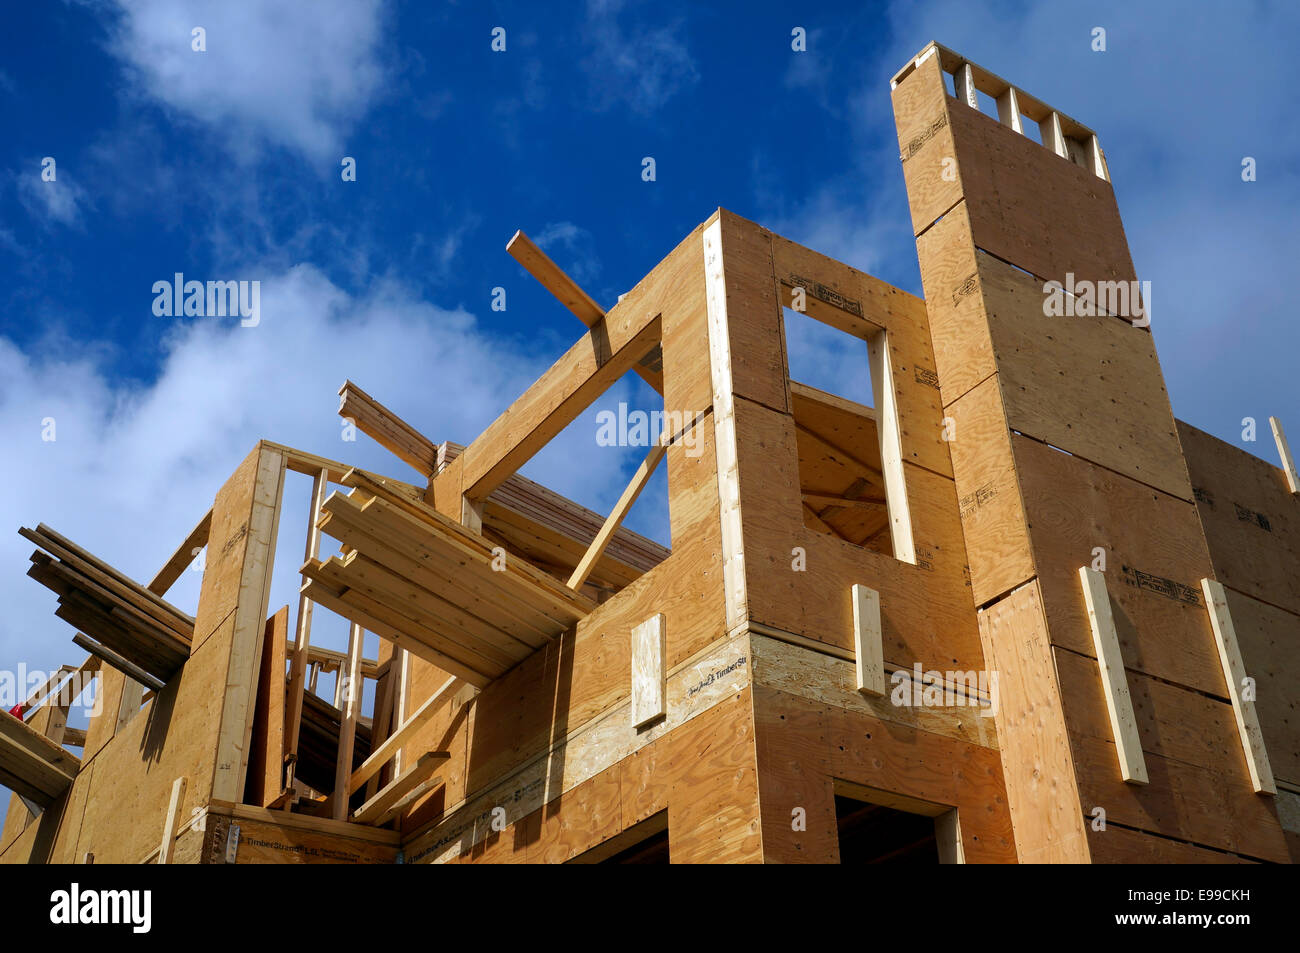 new-wood-frame-house-being-constructed-in-vancouver-bc-canada-E99CKH.jpg